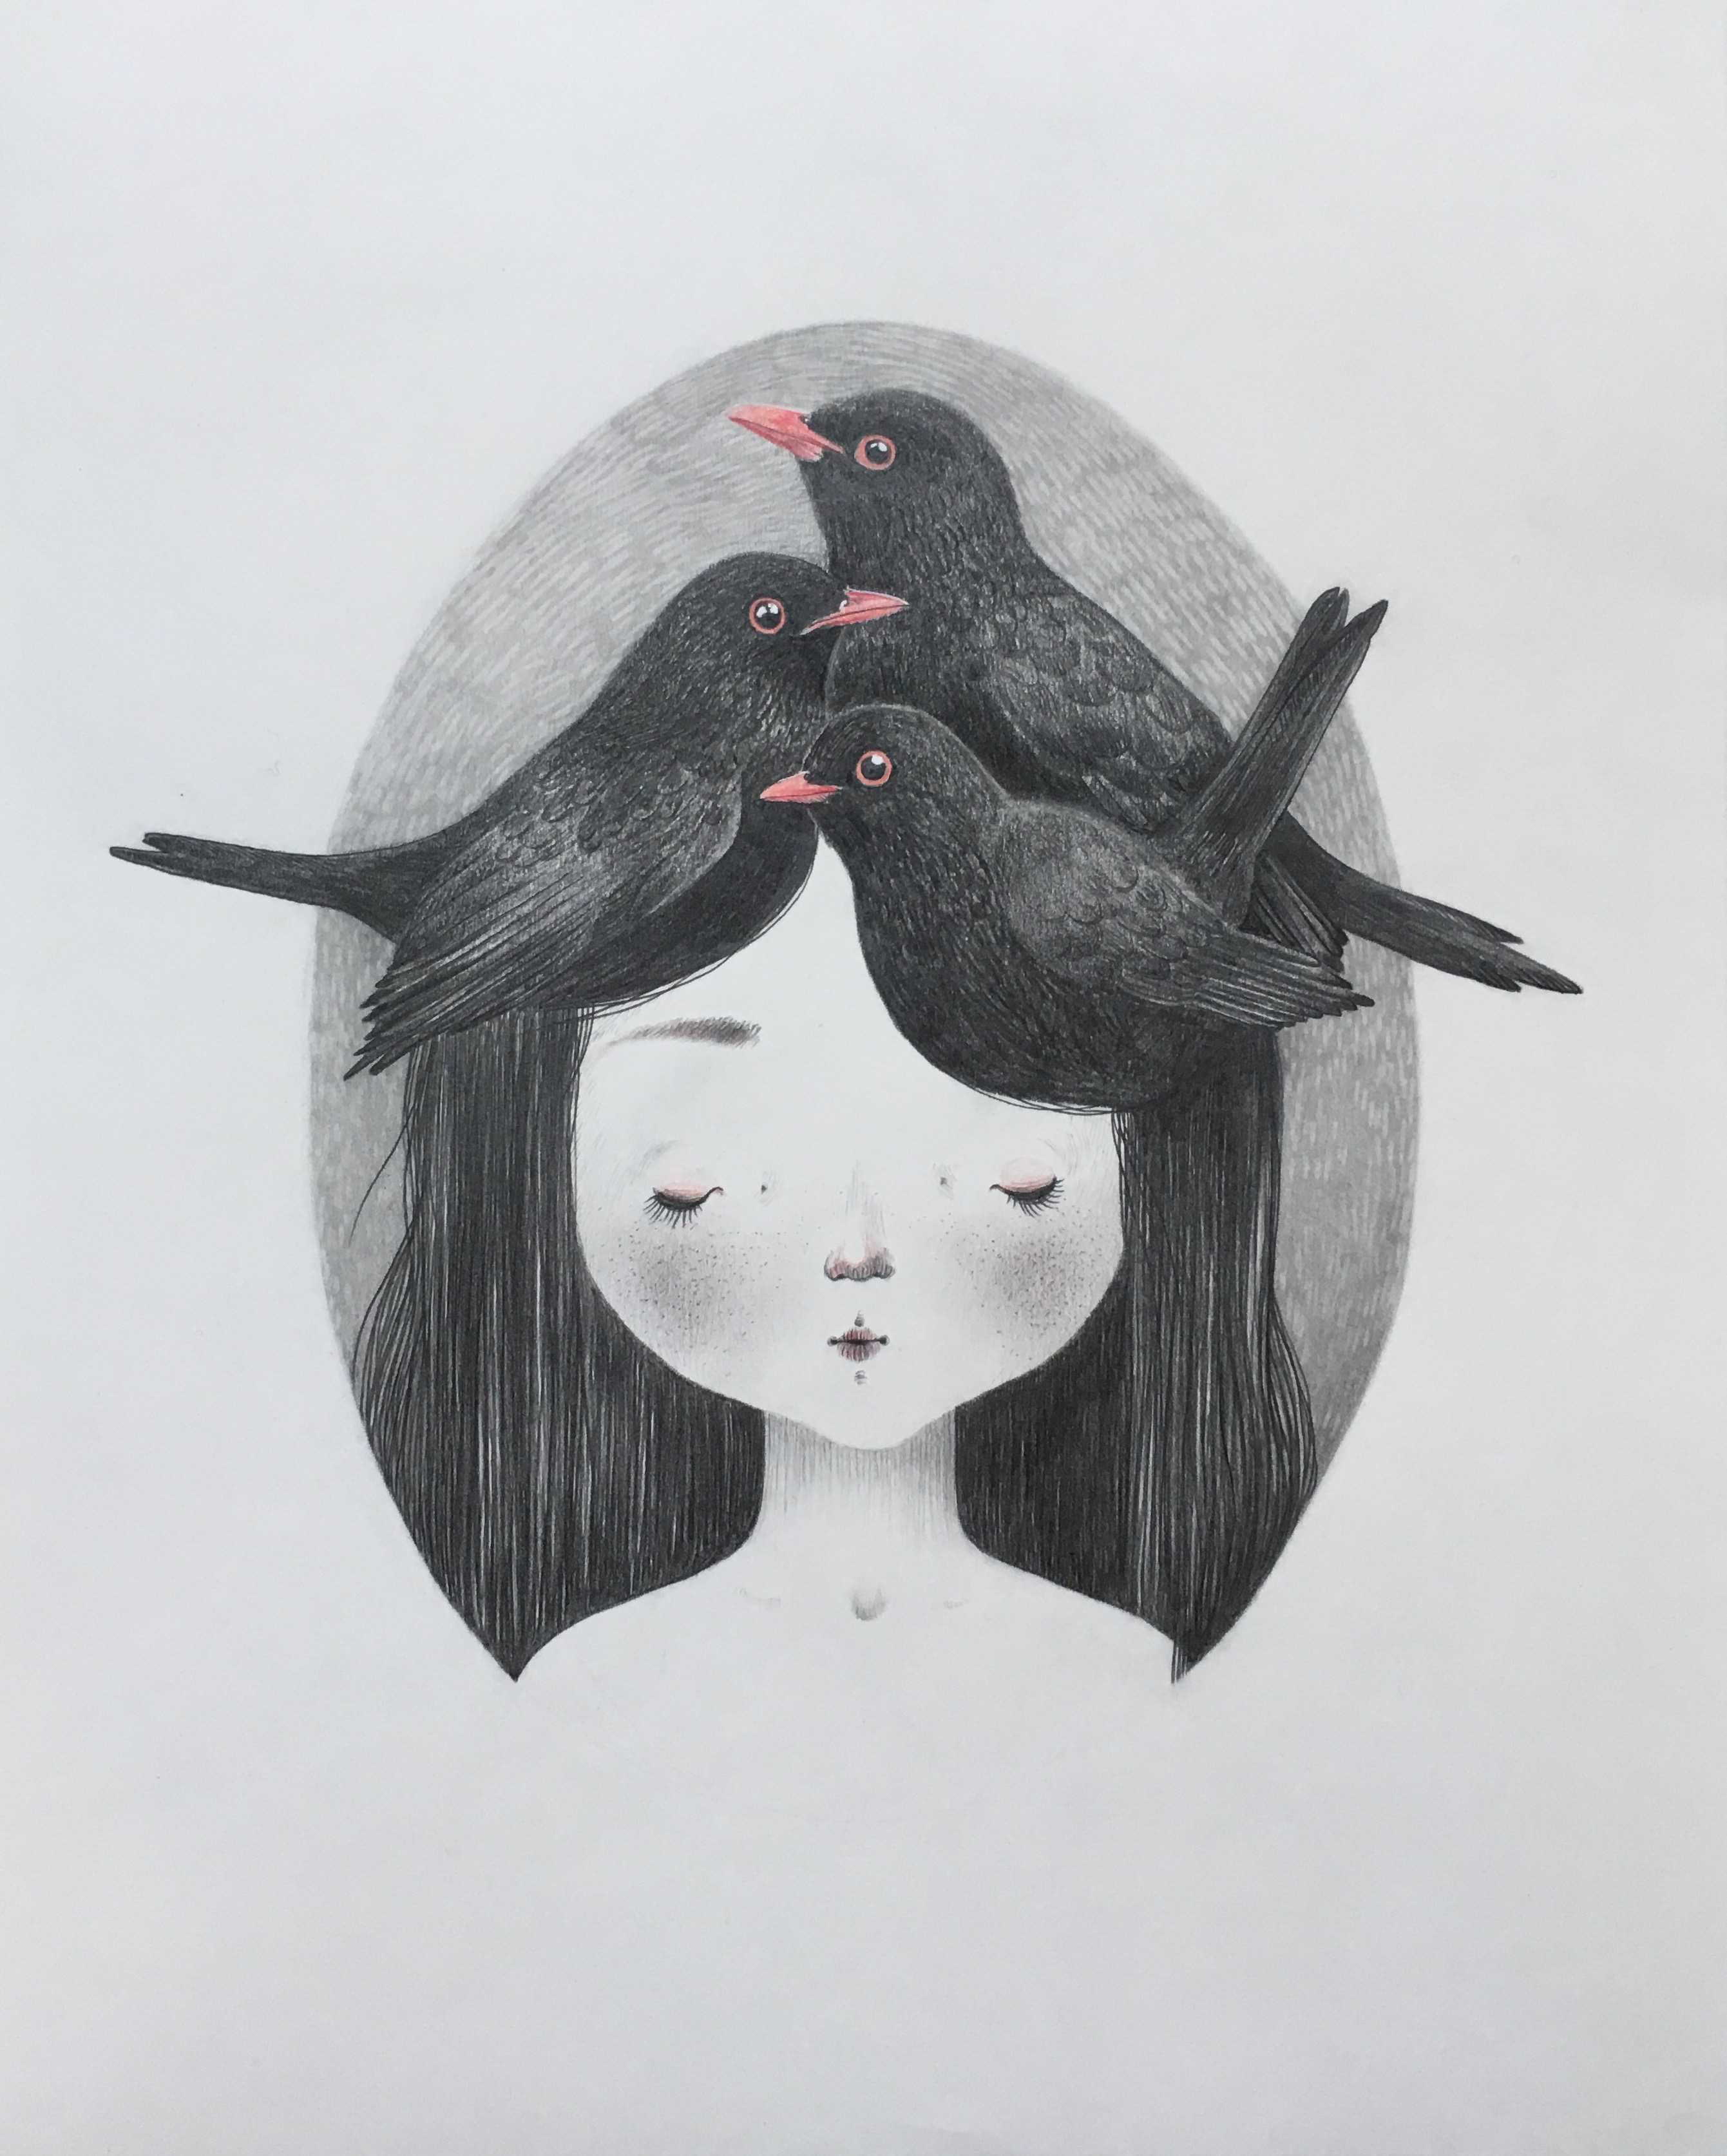 seforapons-graphite-coloured pencils-girl-blackbird-symbiosis-kurotadorichan